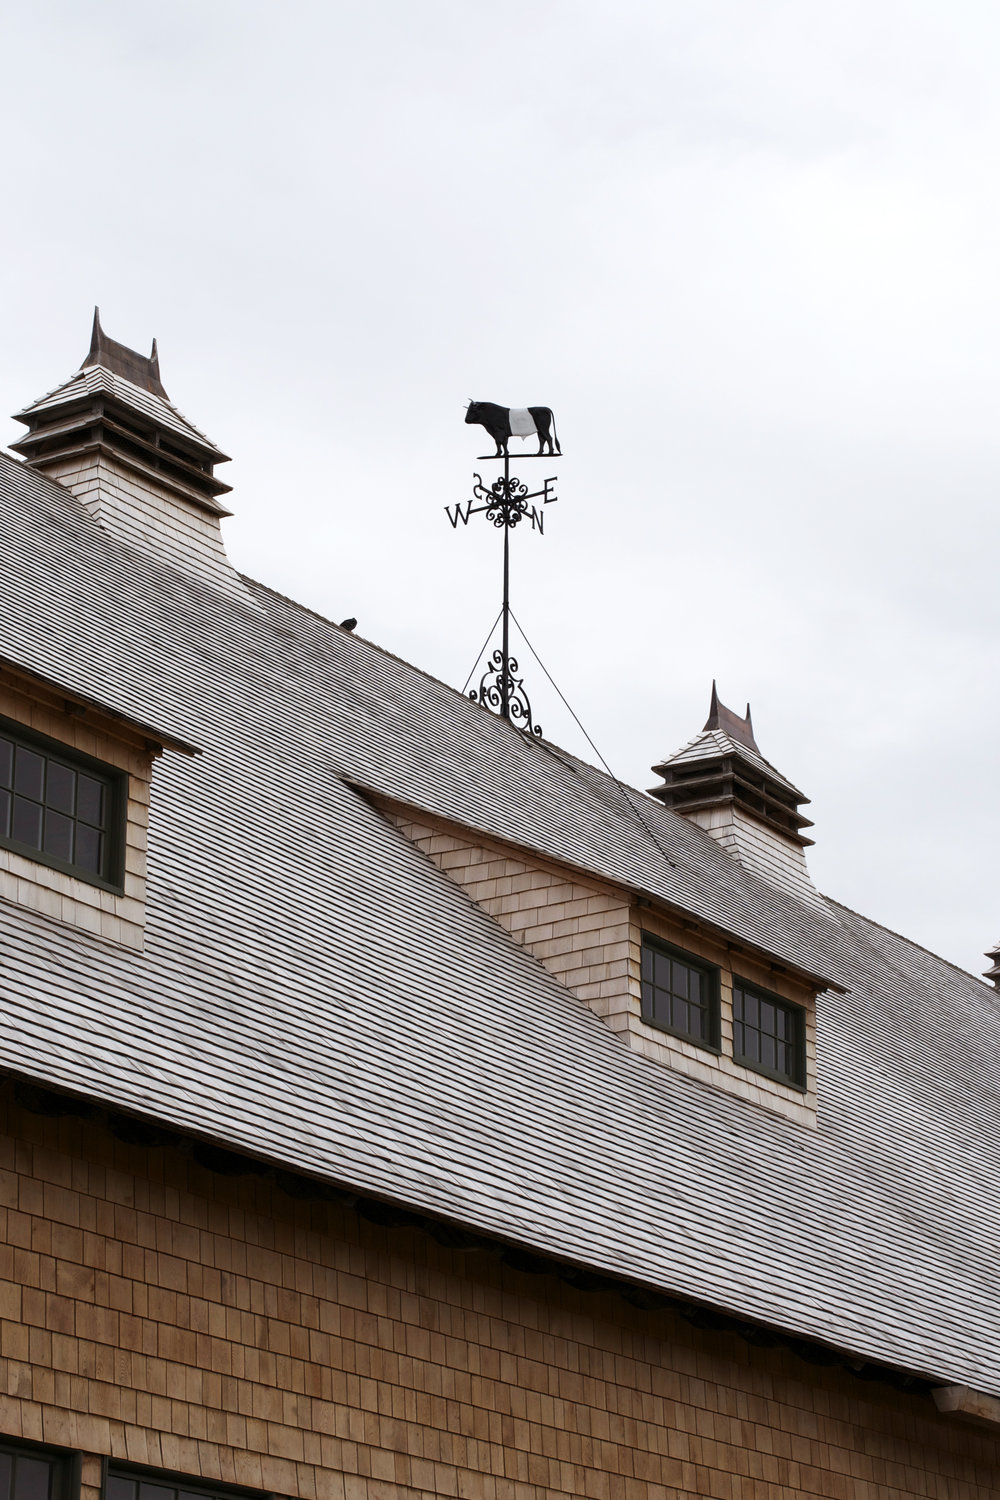 barn-weathervane.jpg